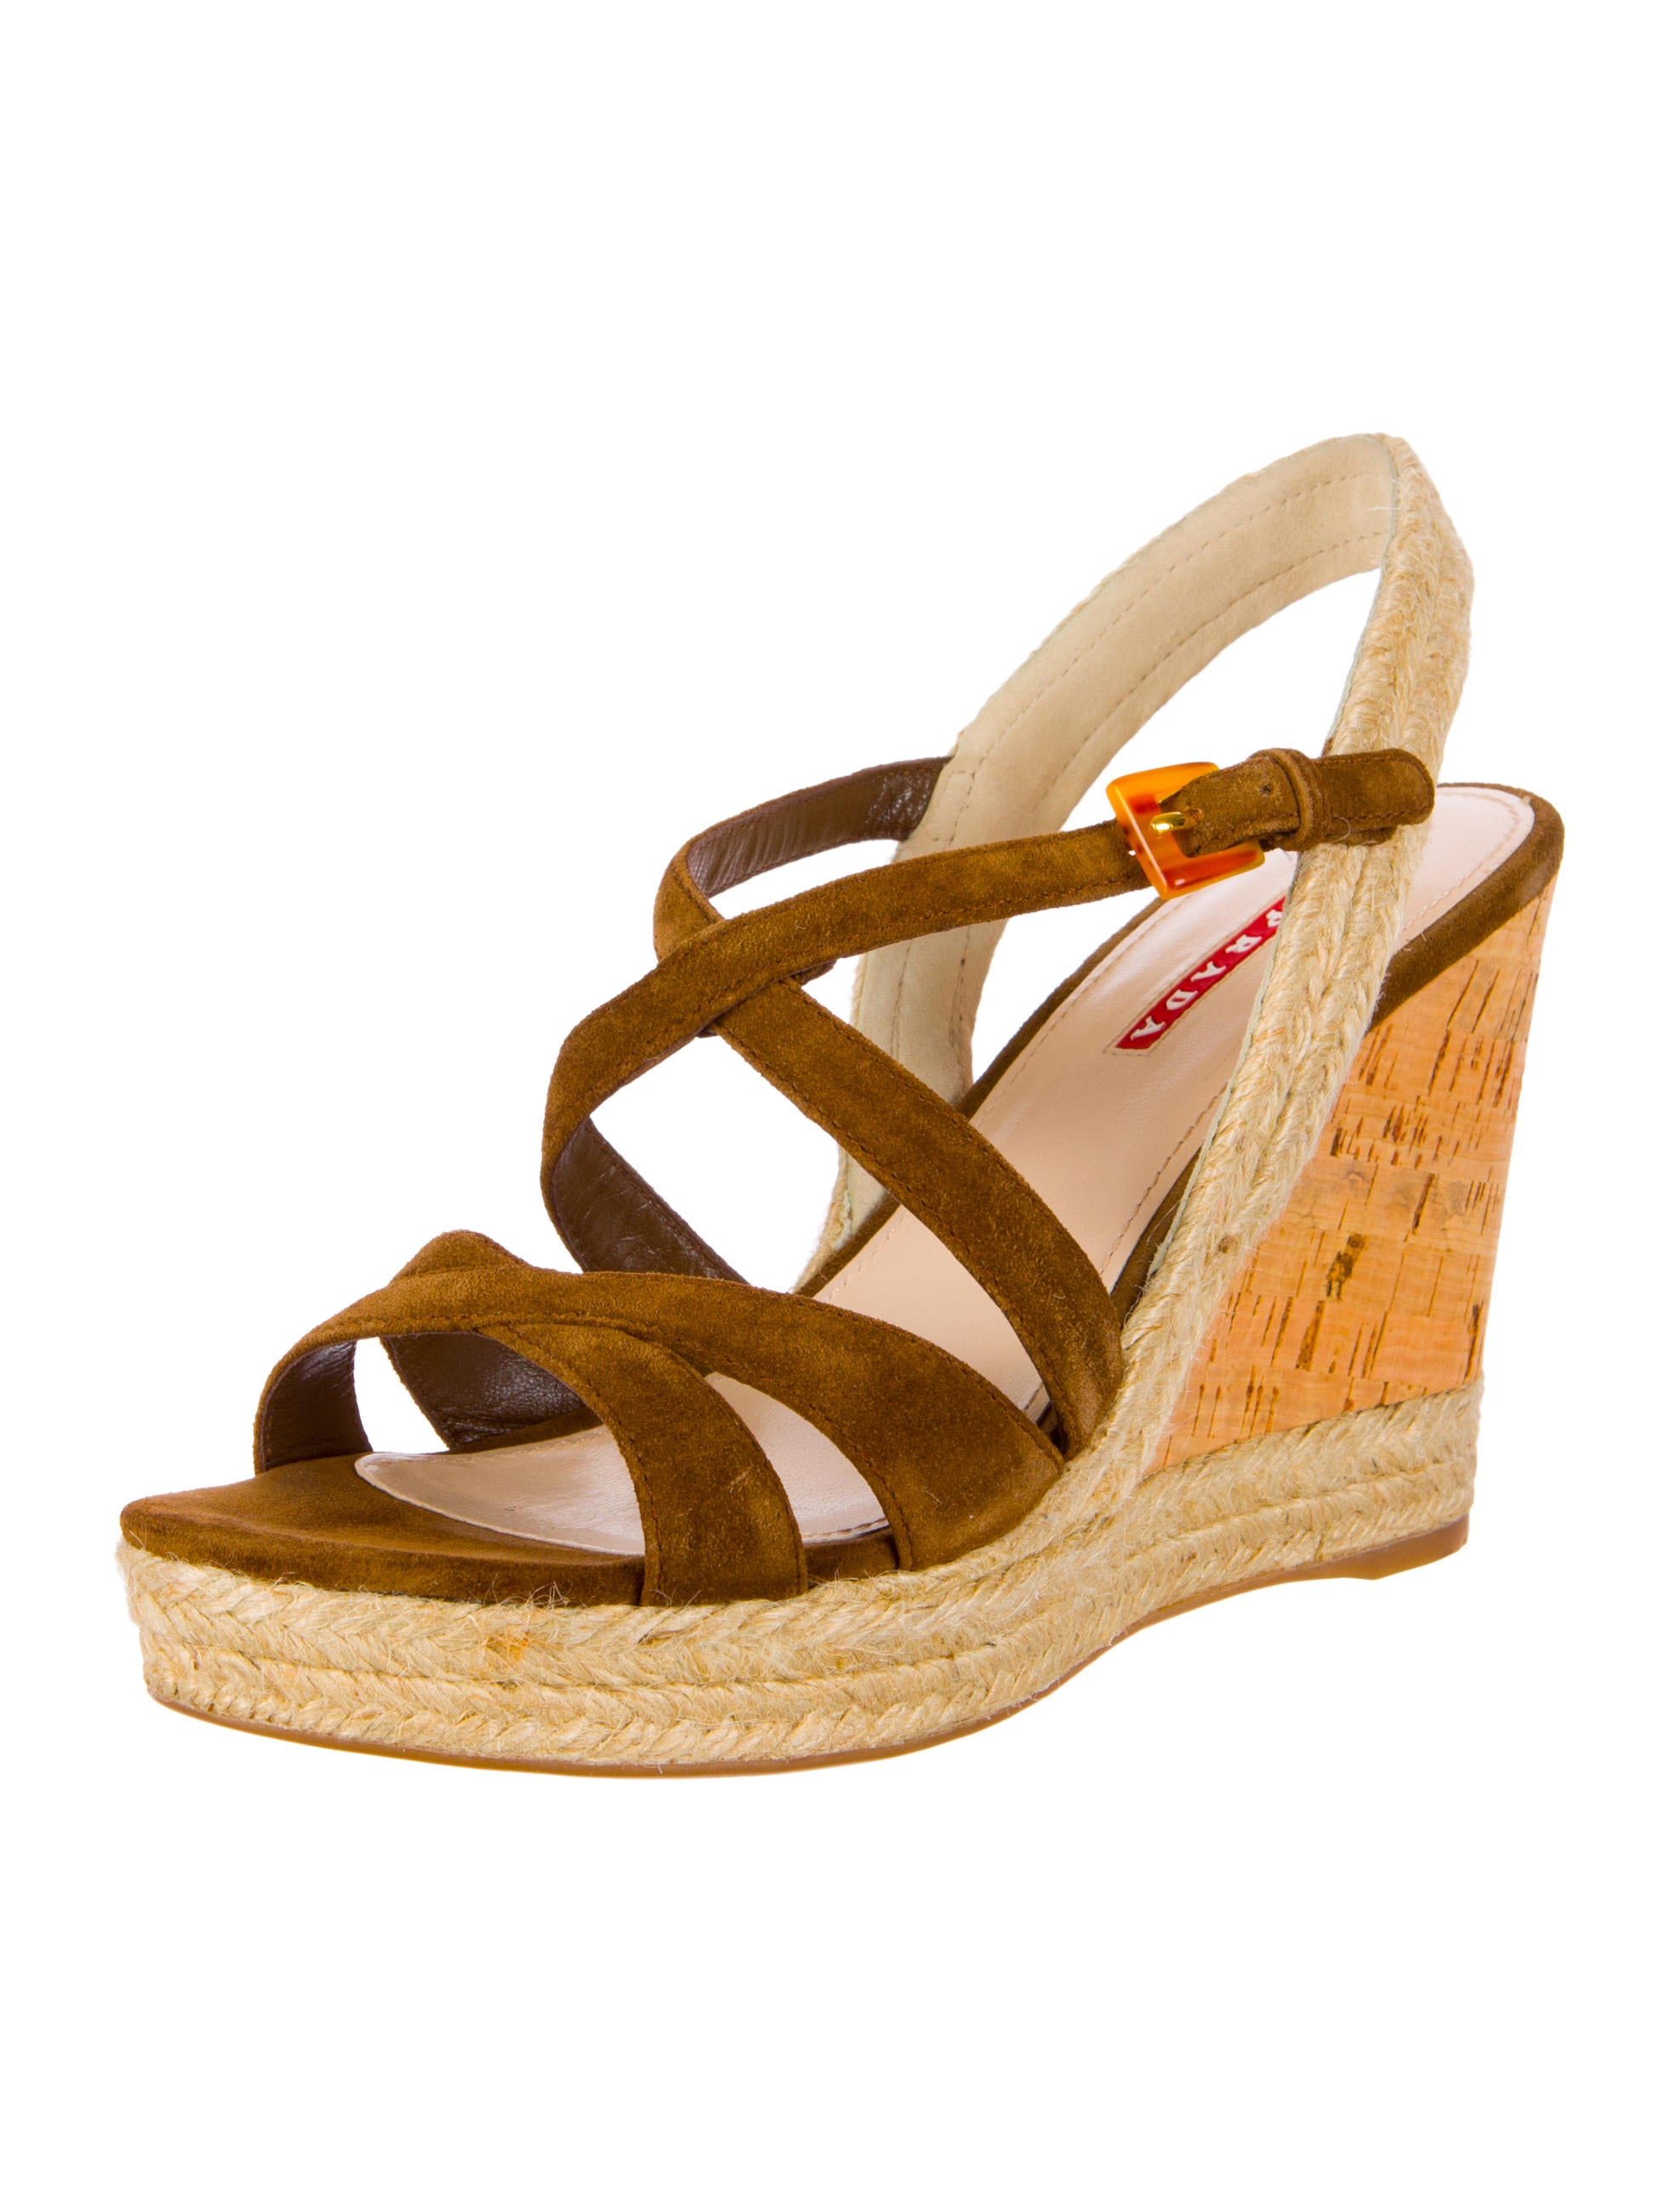 prada sport cork wedges shoes wpr30079 the realreal